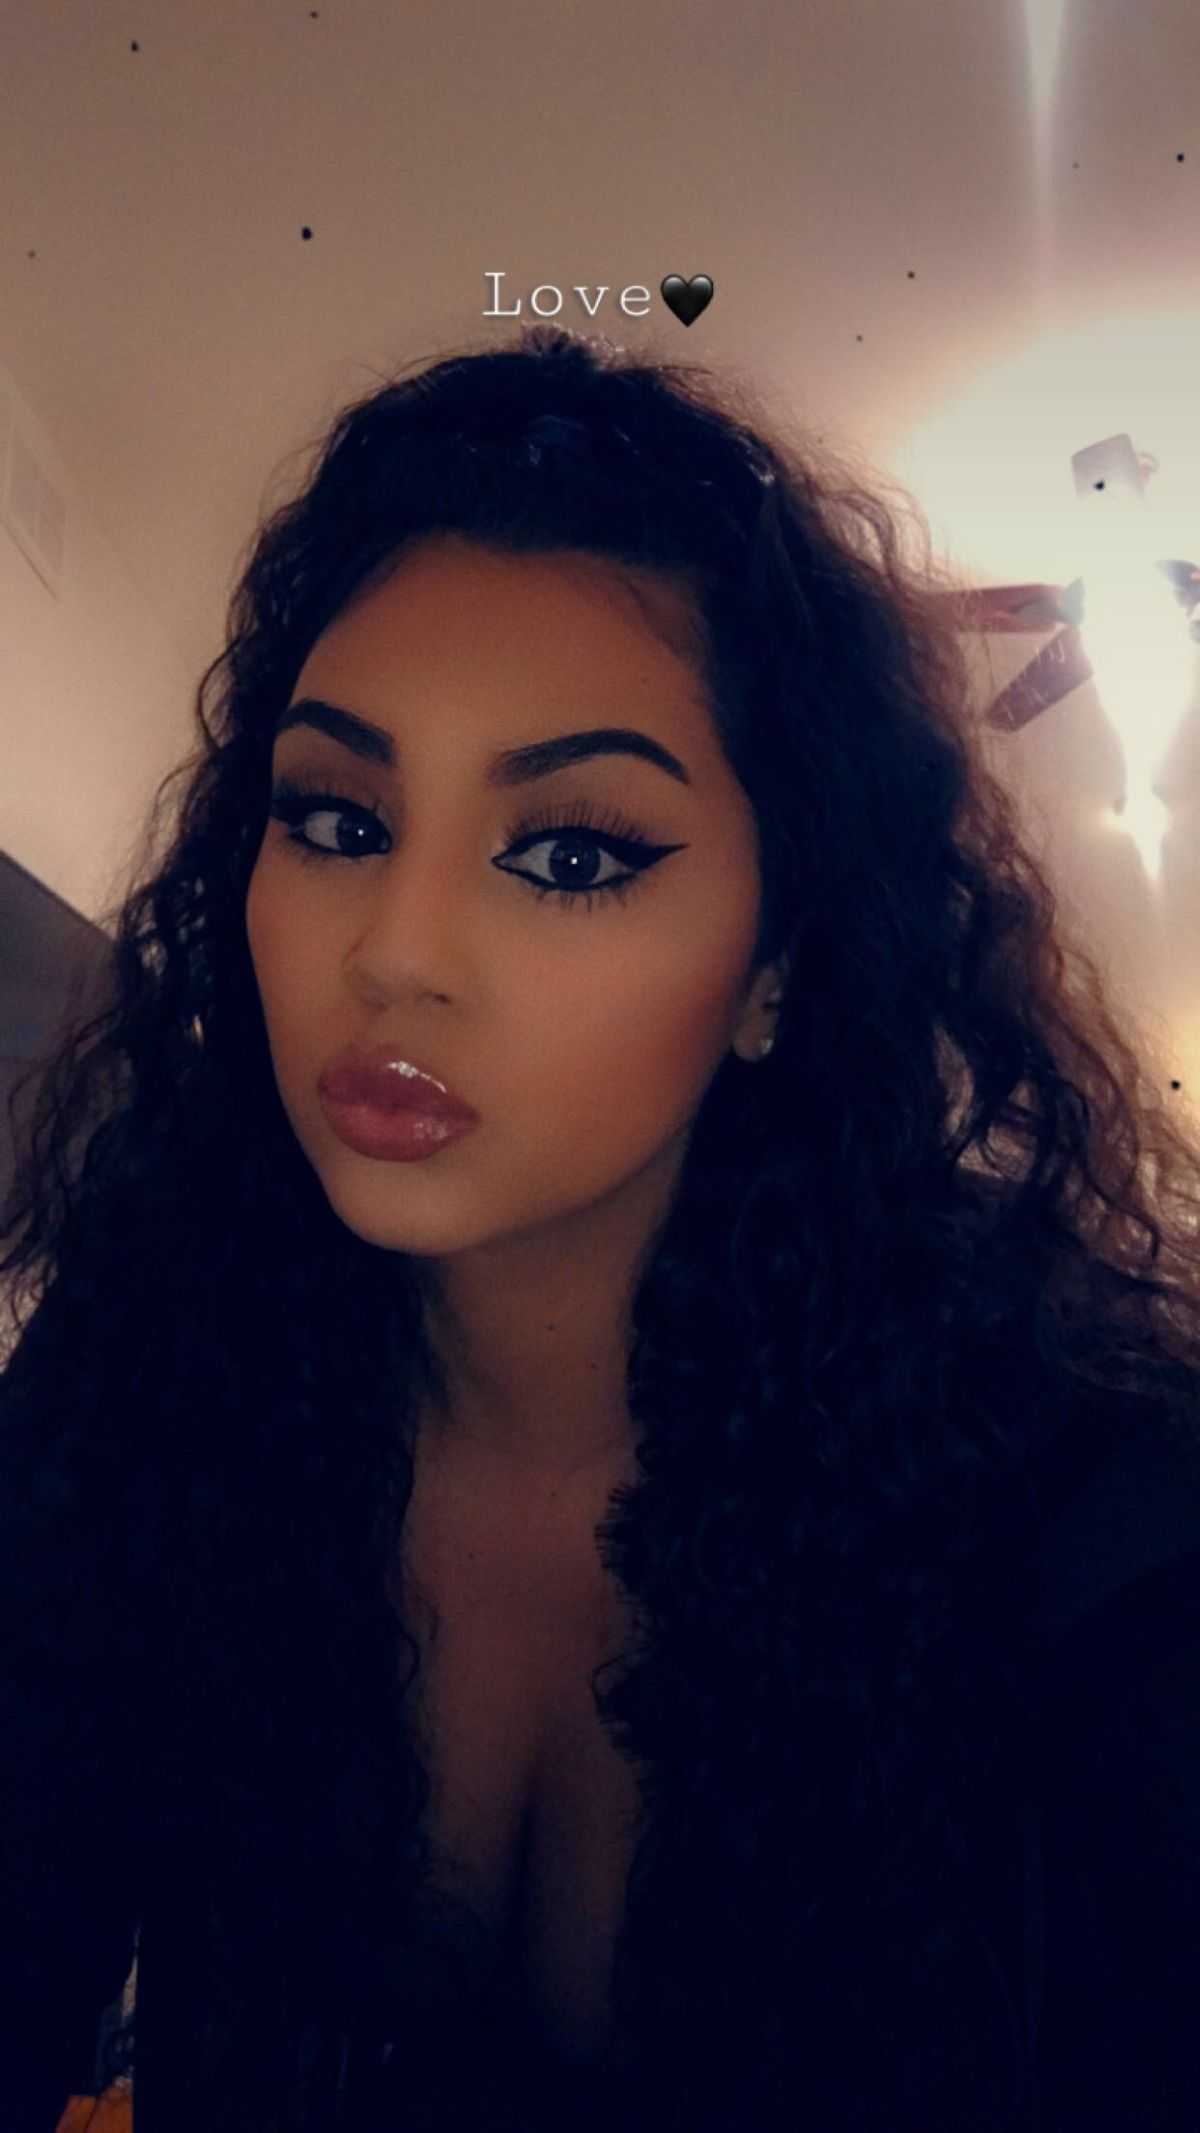 Priya photos and videos onlyfans leaked